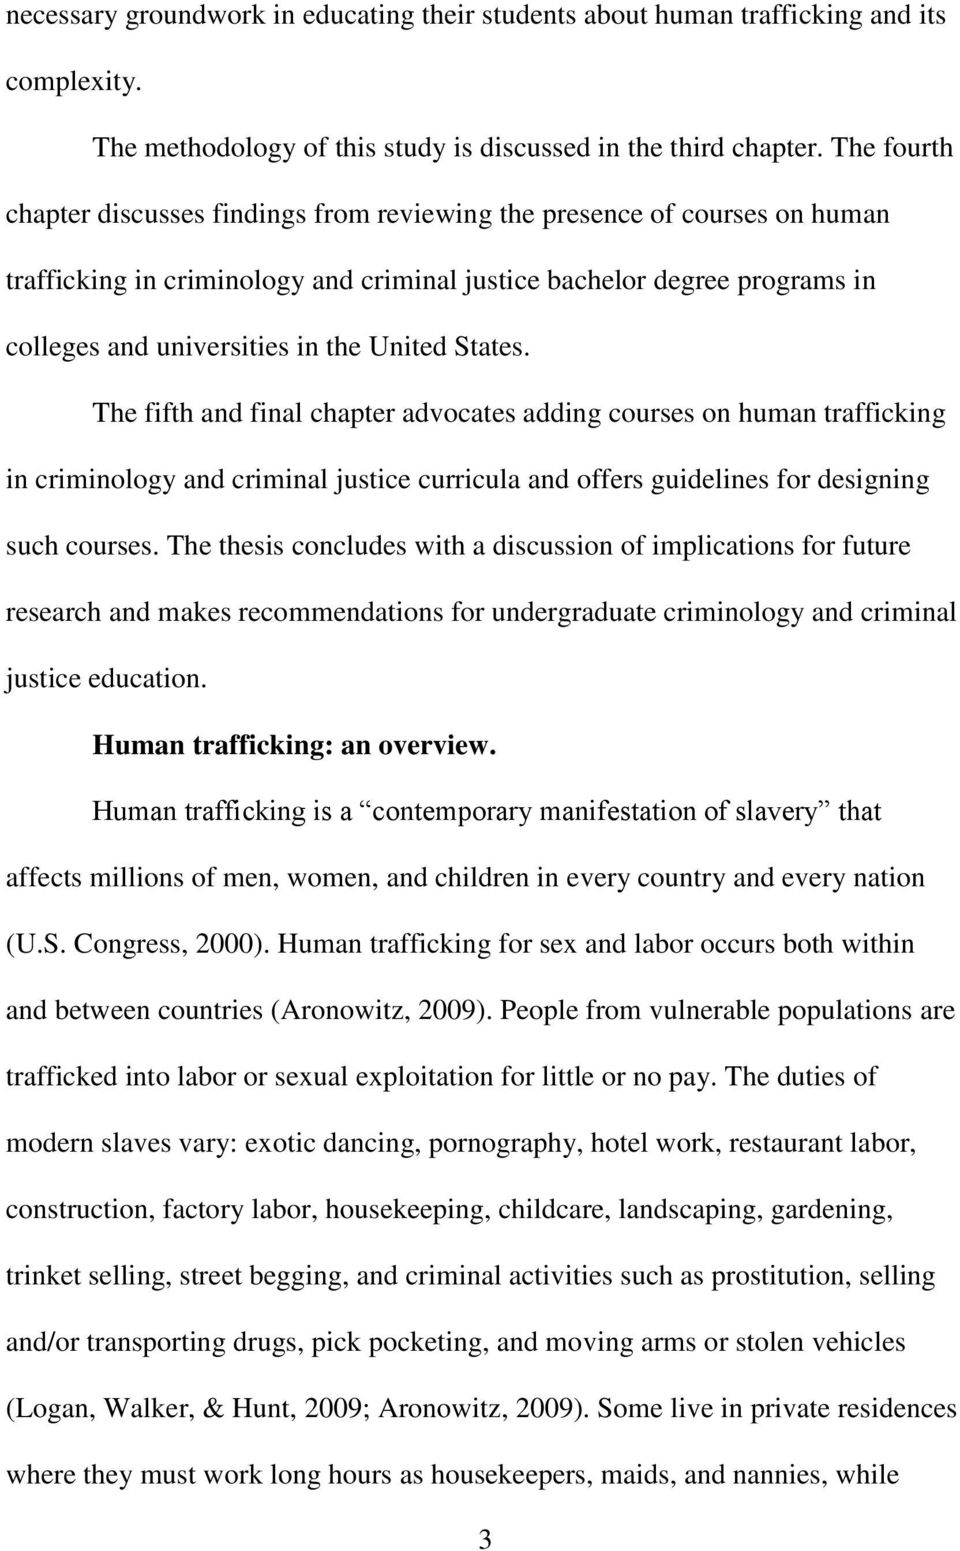 United States. The fifth and final chapter advocates adding courses on human trafficking in criminology and criminal justice curricula and offers guidelines for designing such courses.